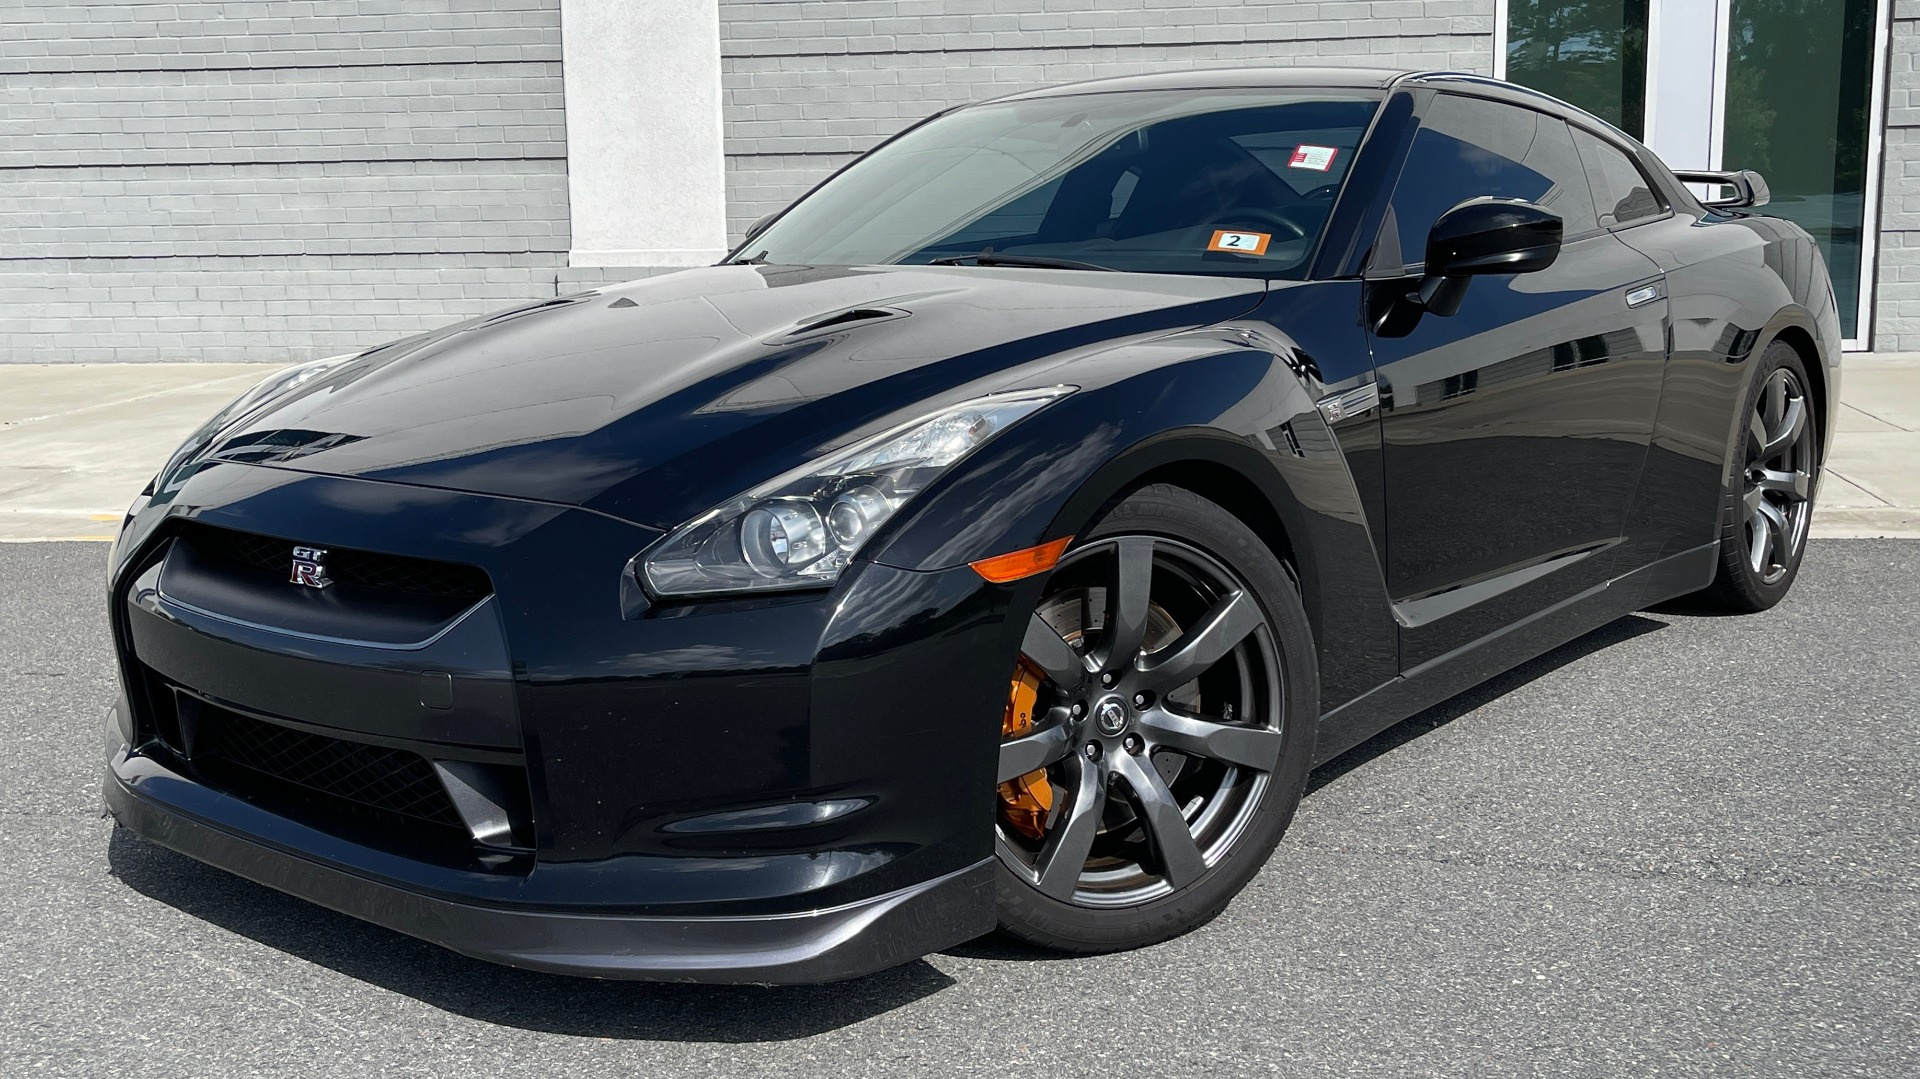 Used 2009 Nissan GT-R PREMIUM COUPE / AWD / TT 3.8L V6 / NAV / BOSE / BREMBO for sale $57,995 at Formula Imports in Charlotte NC 28227 1